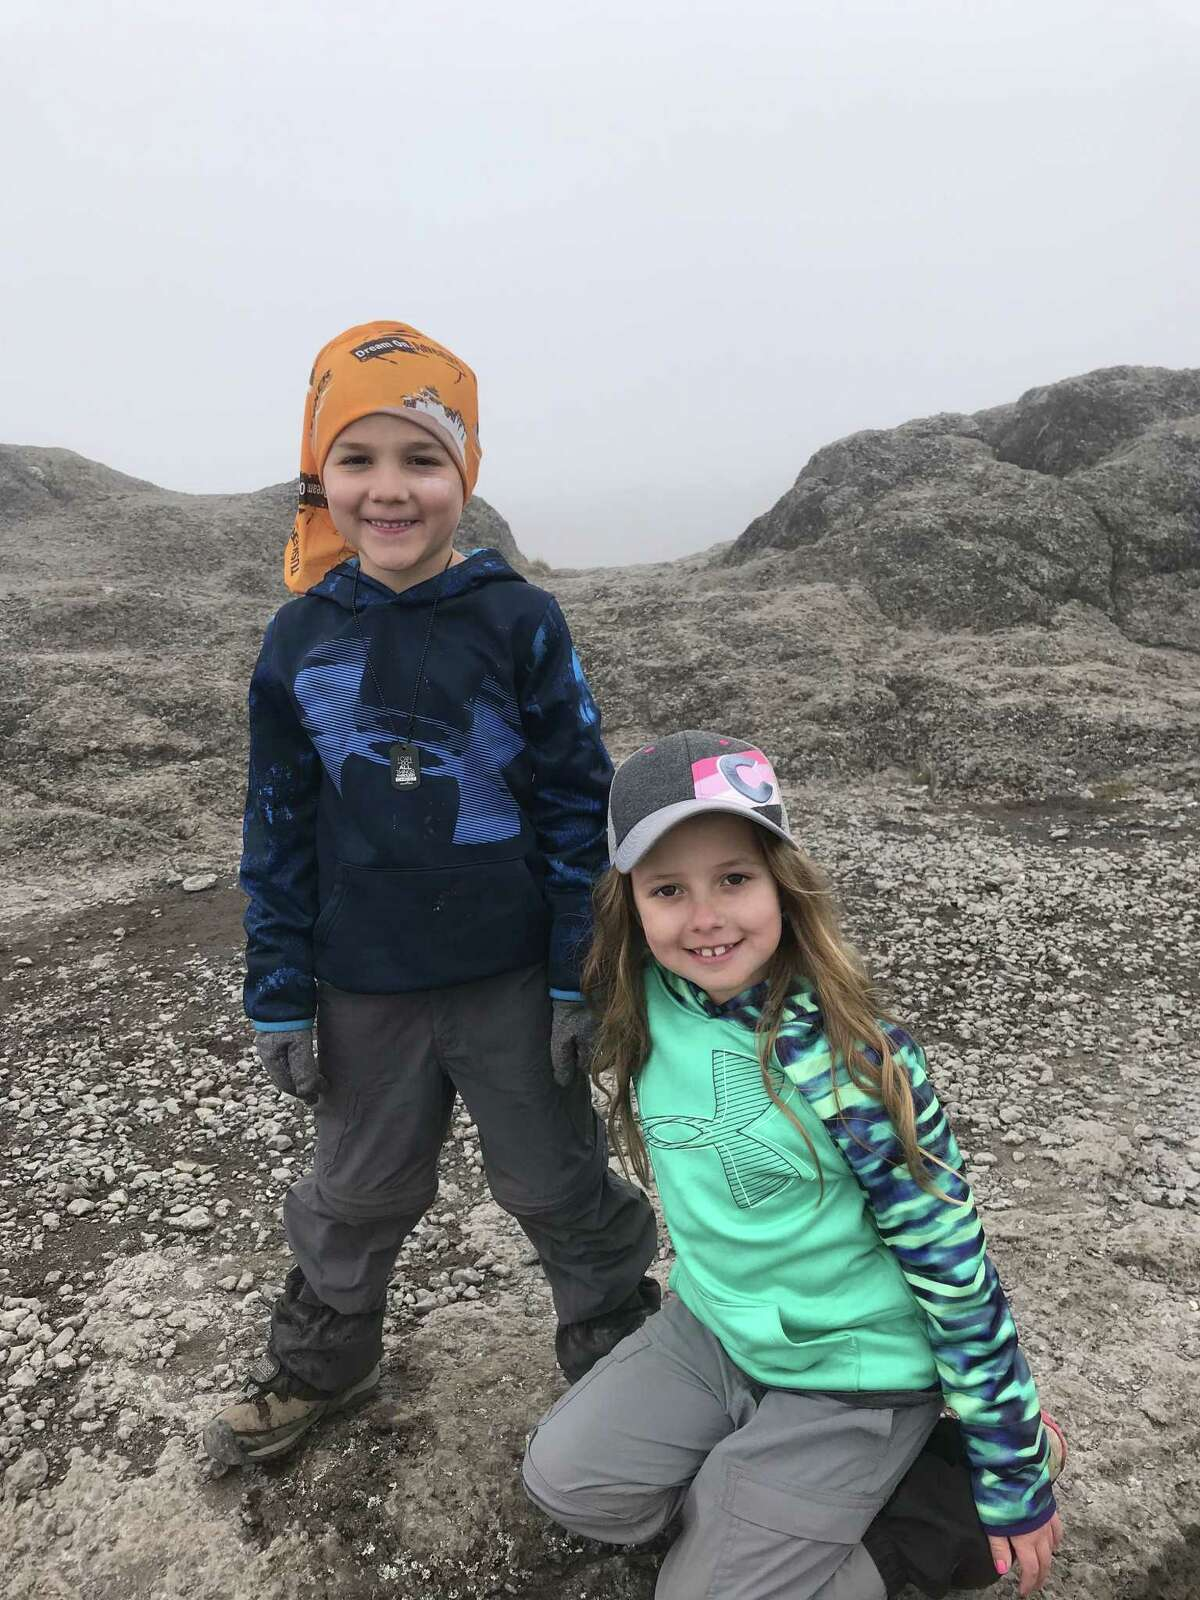 Joel and Charli Redmond say they were thrilled to reach the summit on Mount Kilimanjaro with their parents.